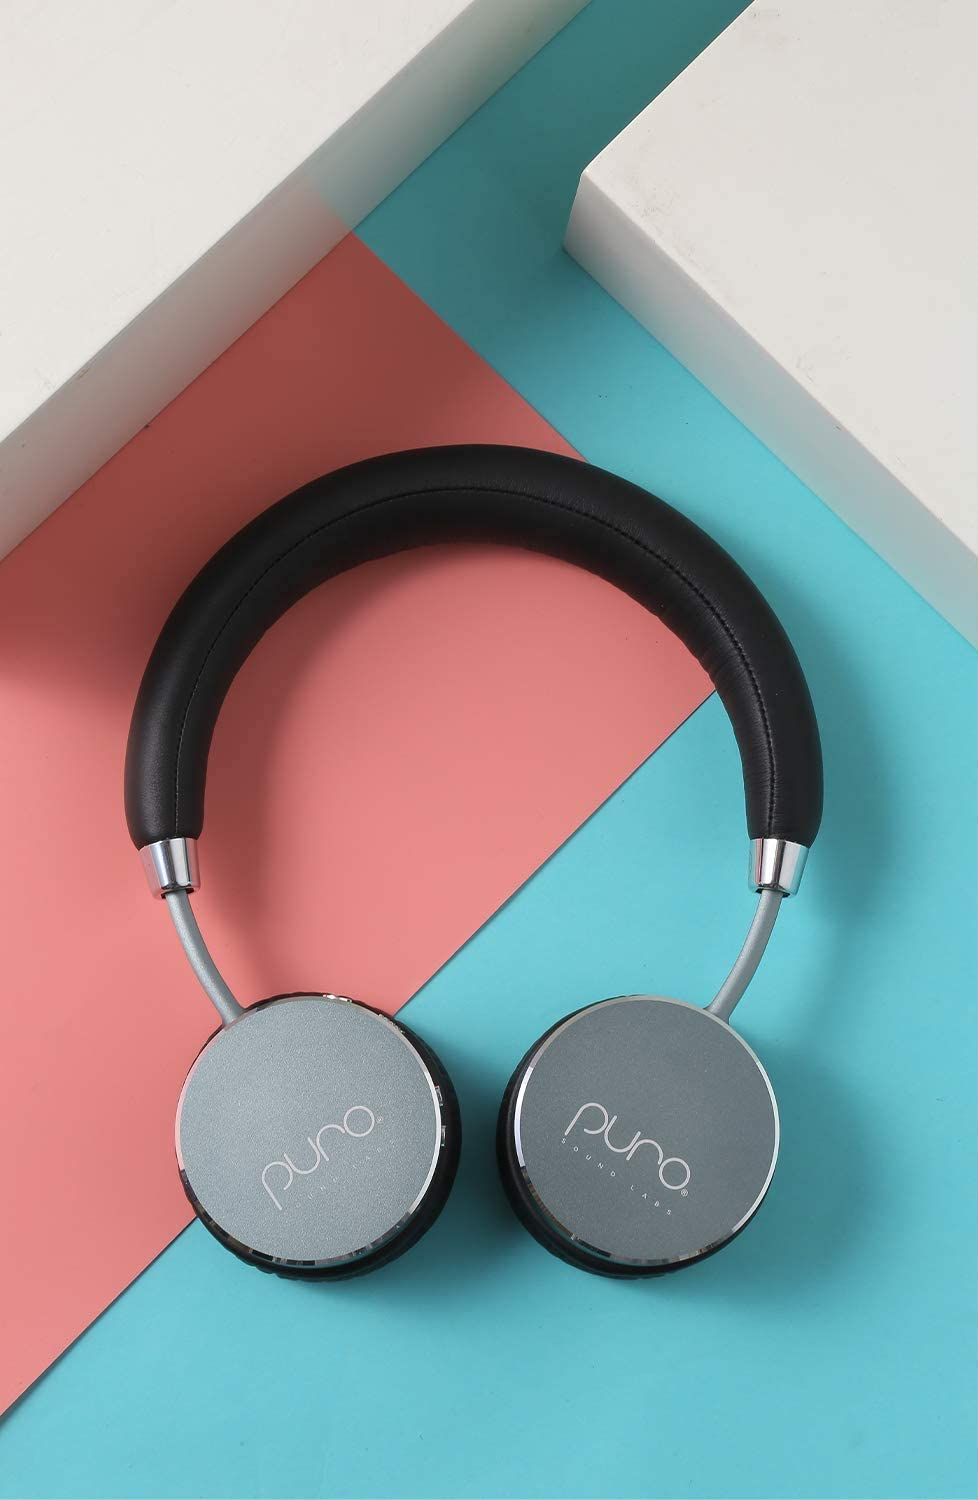 Best headphones for kids and teens: The PuroBT2200 are a great choice for young kids.